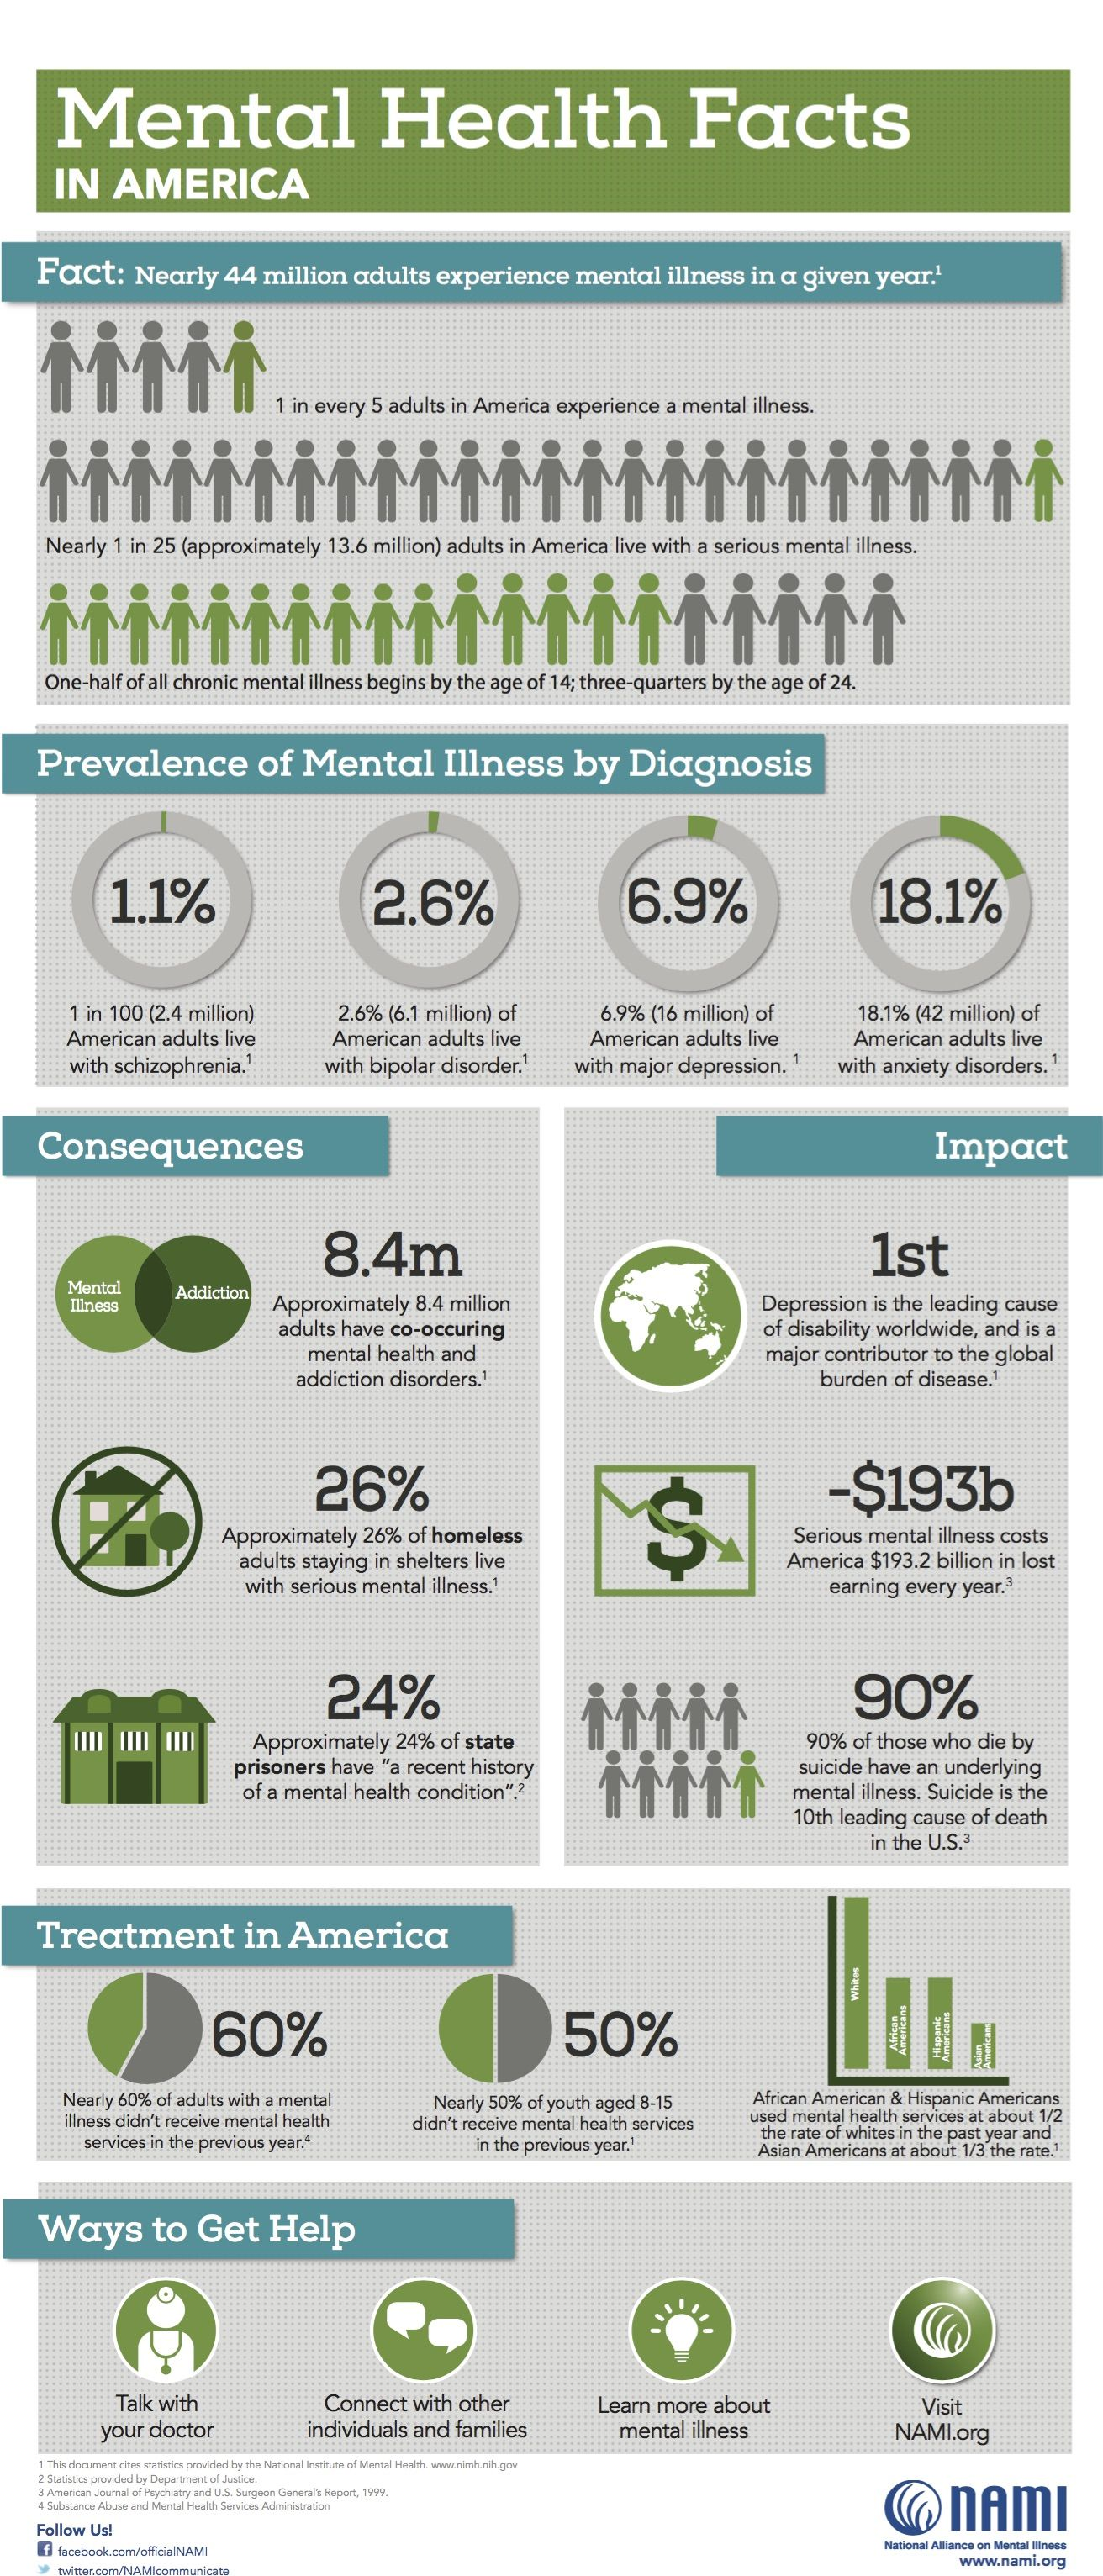 Mental Illness Awareness Week October 4 10 Mental Health Facts In